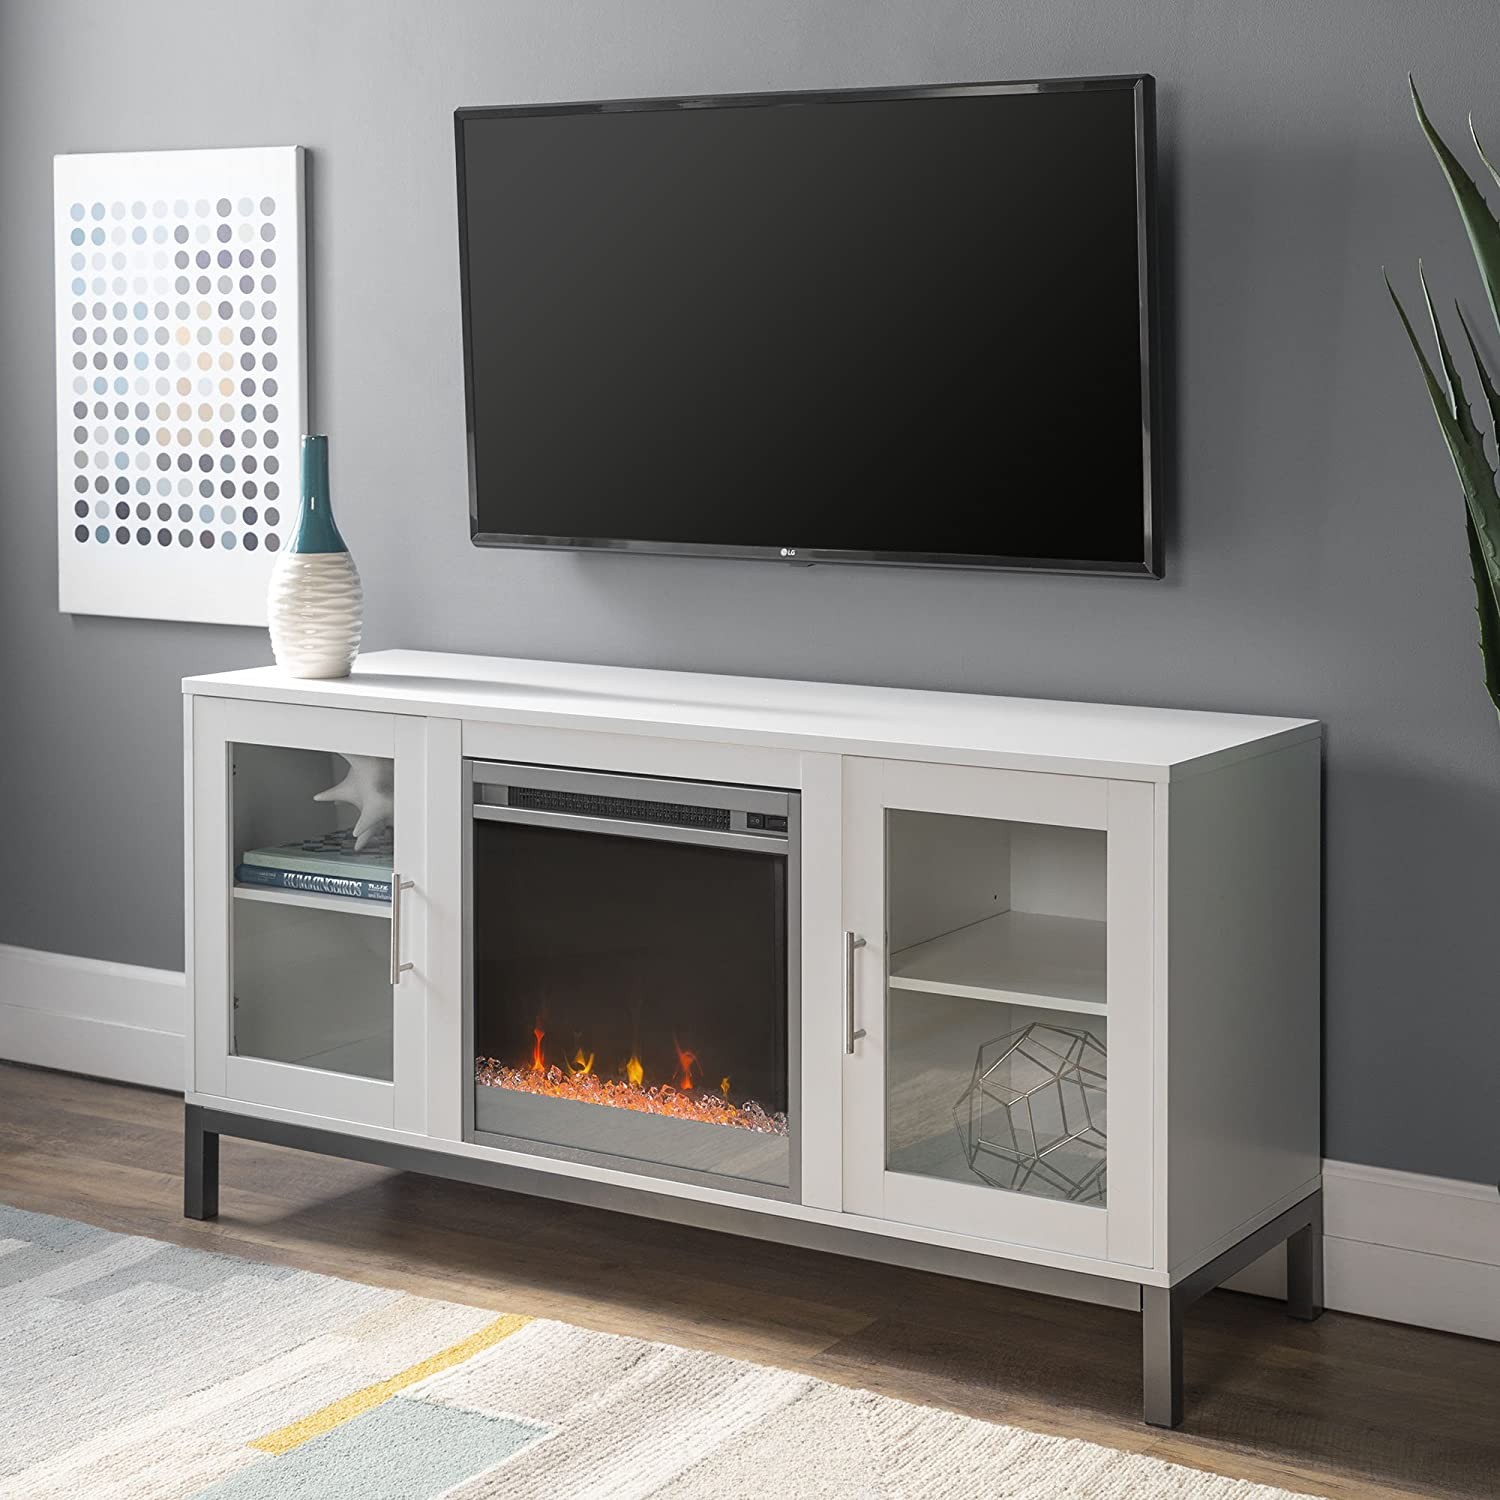 WE Furniture Modern Glass and Wood Fireplace Universal Stand with Open TV s up to 58 Flat Screen Living Room Storage Entertainment Center, White